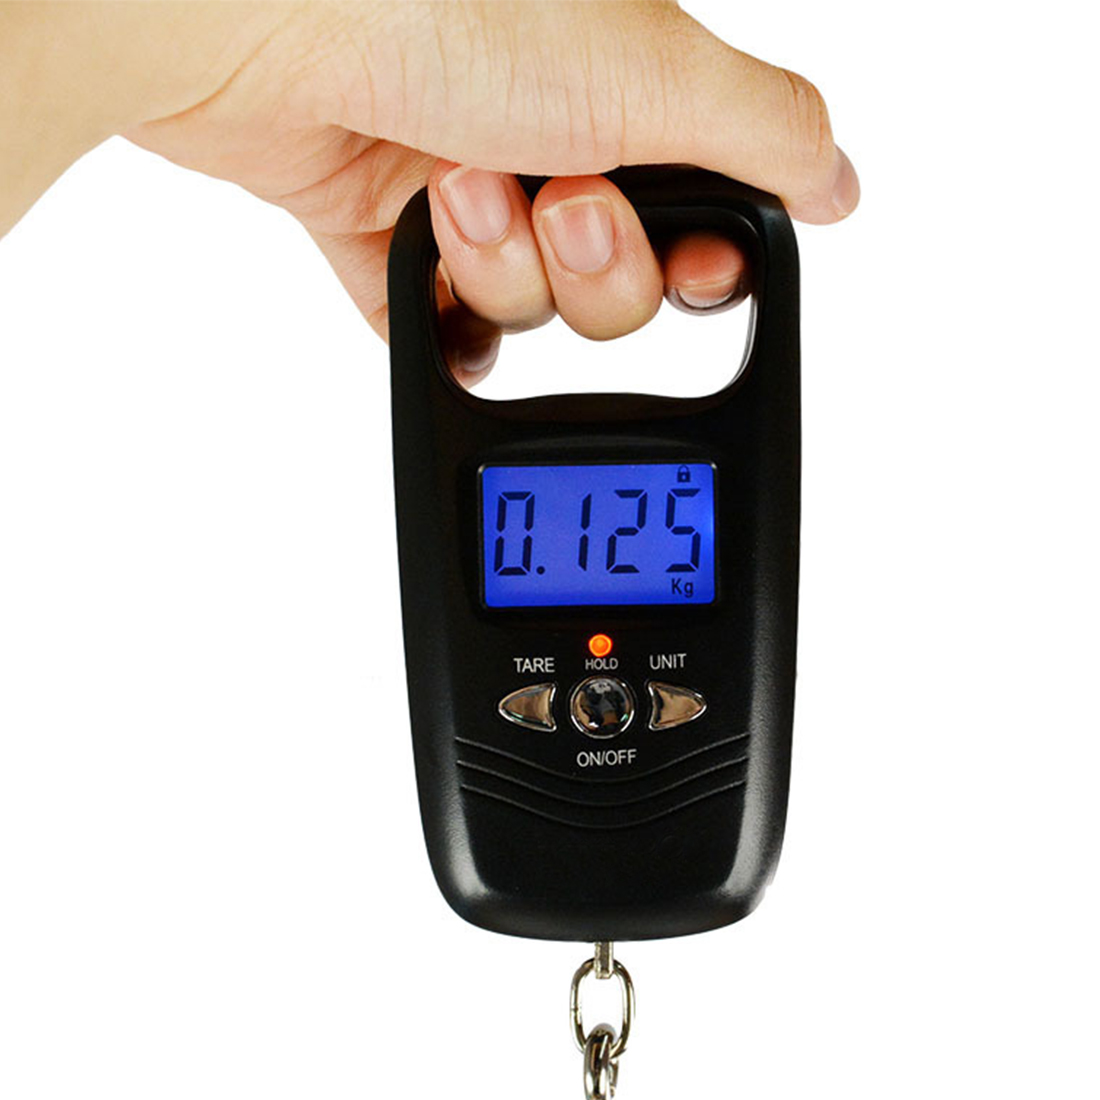 Hook Fish <font><b>Weight</b></font> Mini Hanging <font><b>Scale</b></font> Pocket Portable 50kg LCD <font><b>Digital</b></font> Hanging Luggage Weighting Fishing Hook <font><b>Scale</b></font> image